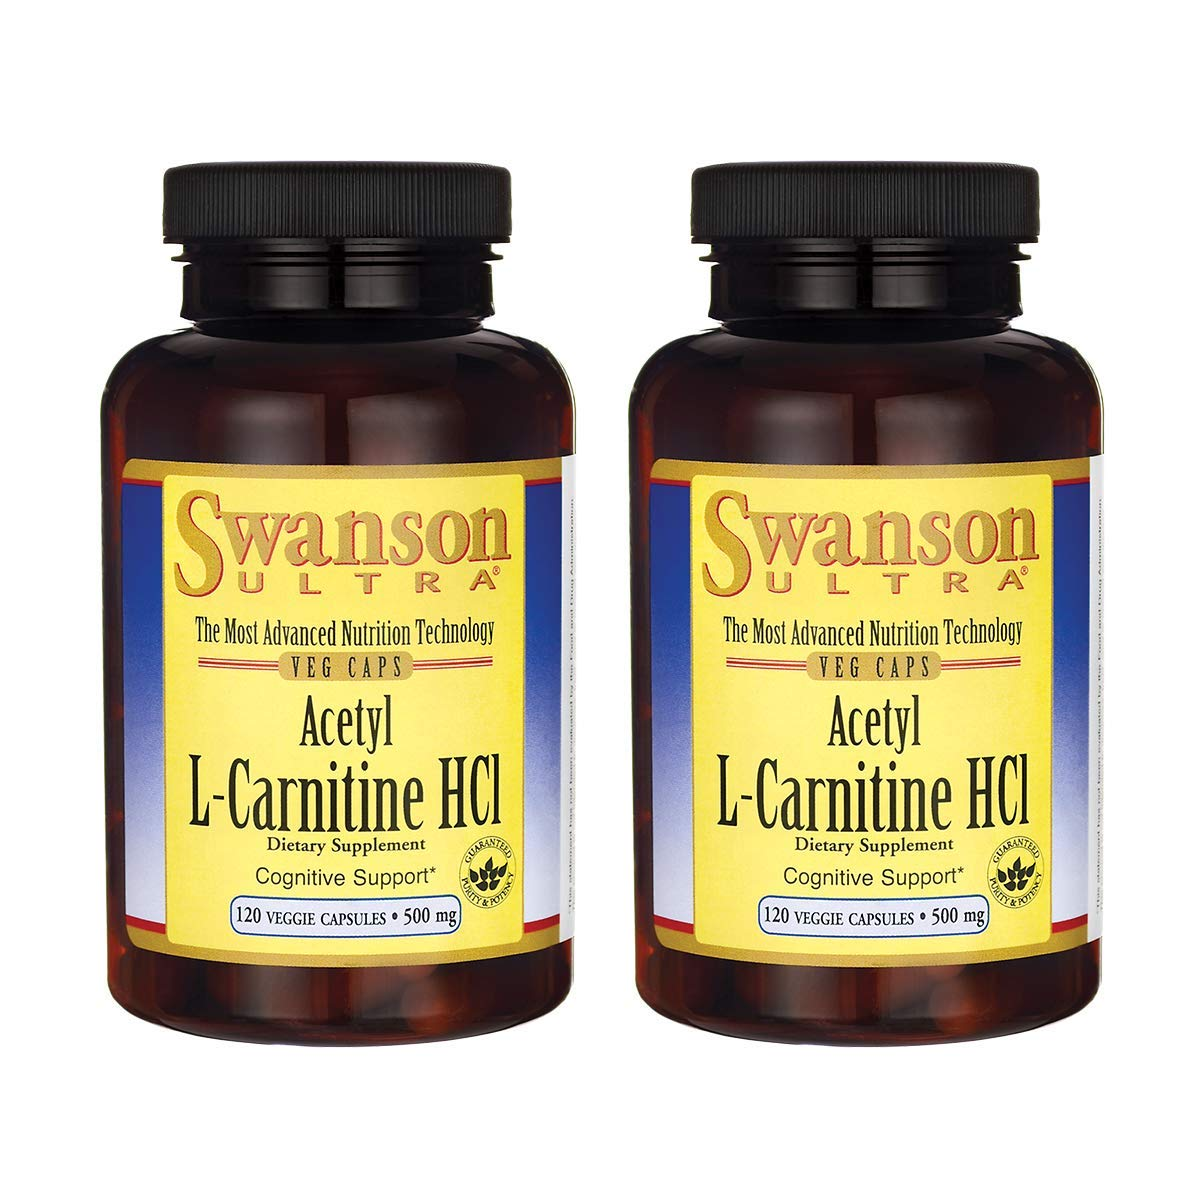 Swanson Amino Acid Acetyl L-Carnitine Hcl 500 Milligrams 120 Veg Capsules (2 Pack)